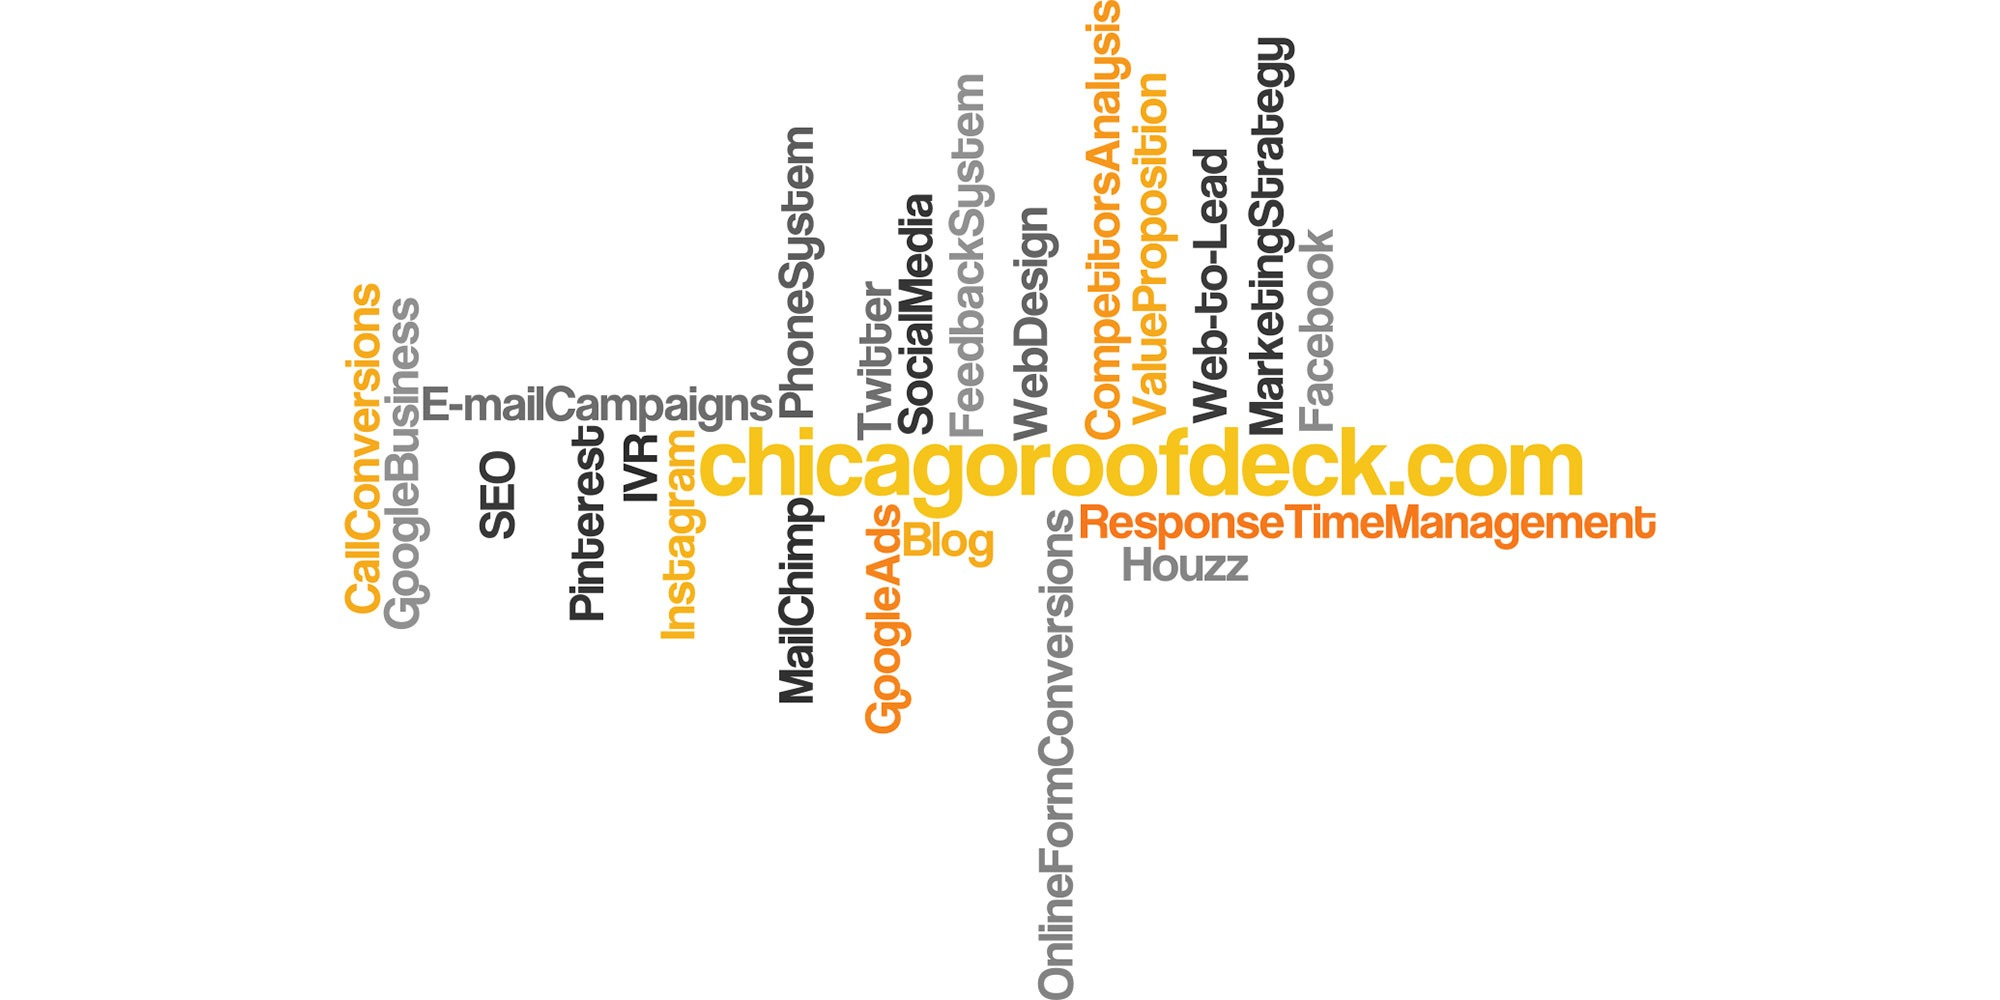 https://chicagoroofdeck.com